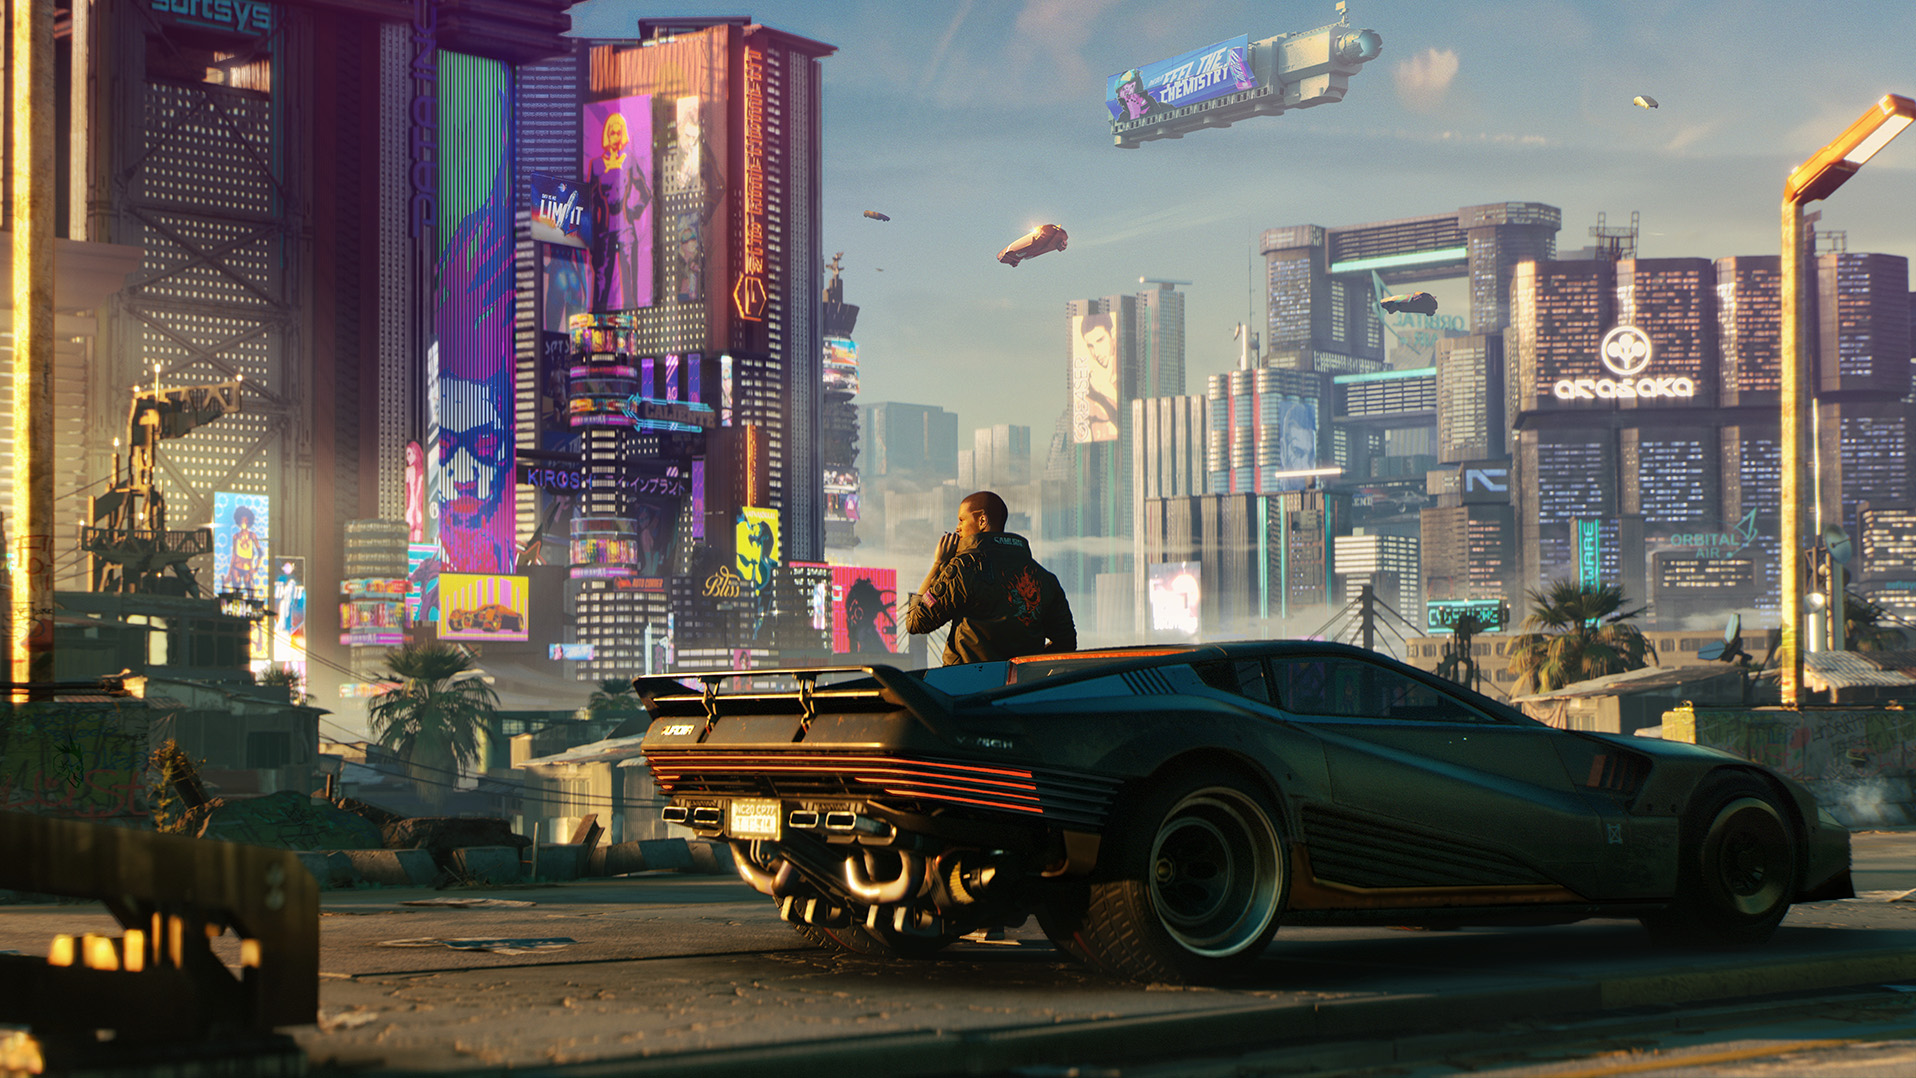 Discover the News of What Happened When Cyberpunk 2077 Was Launched in the Playstation Store